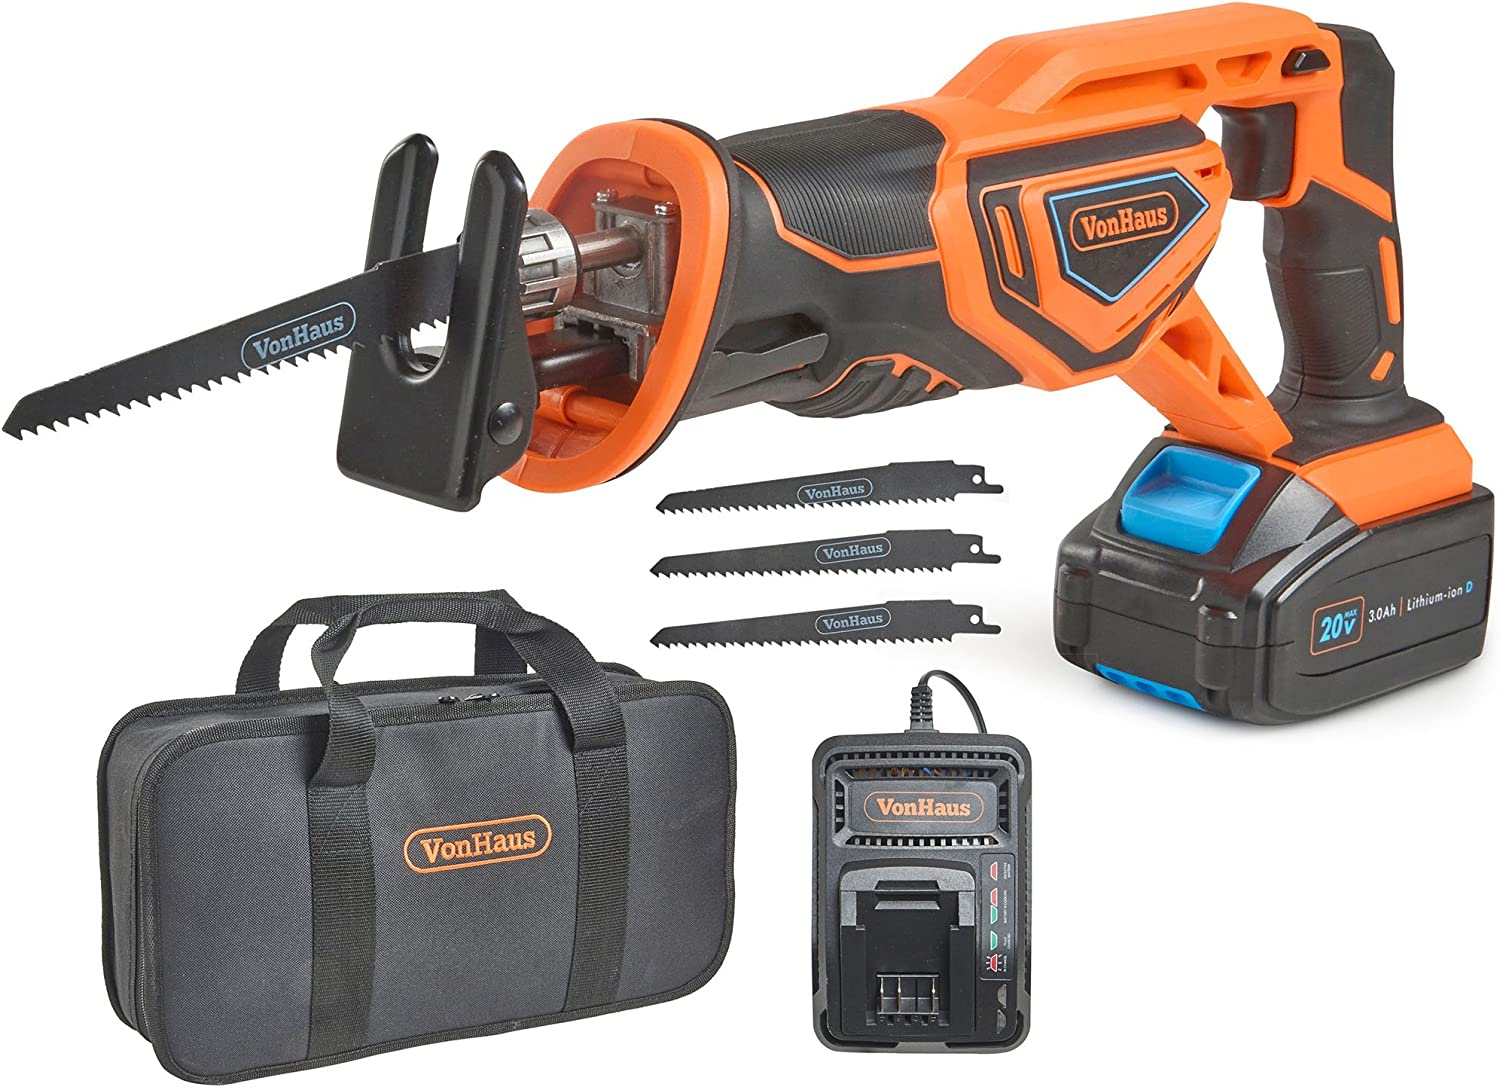 VonHaus 20V MAX Lithium-Ion Cordless Reciprocating Saw Kit with 4x Wood Blades and 1 Stroke Length For Wood Metal Cutting – Includes 3.0Ah Battery, Smart Charger, and Power Tool Bag